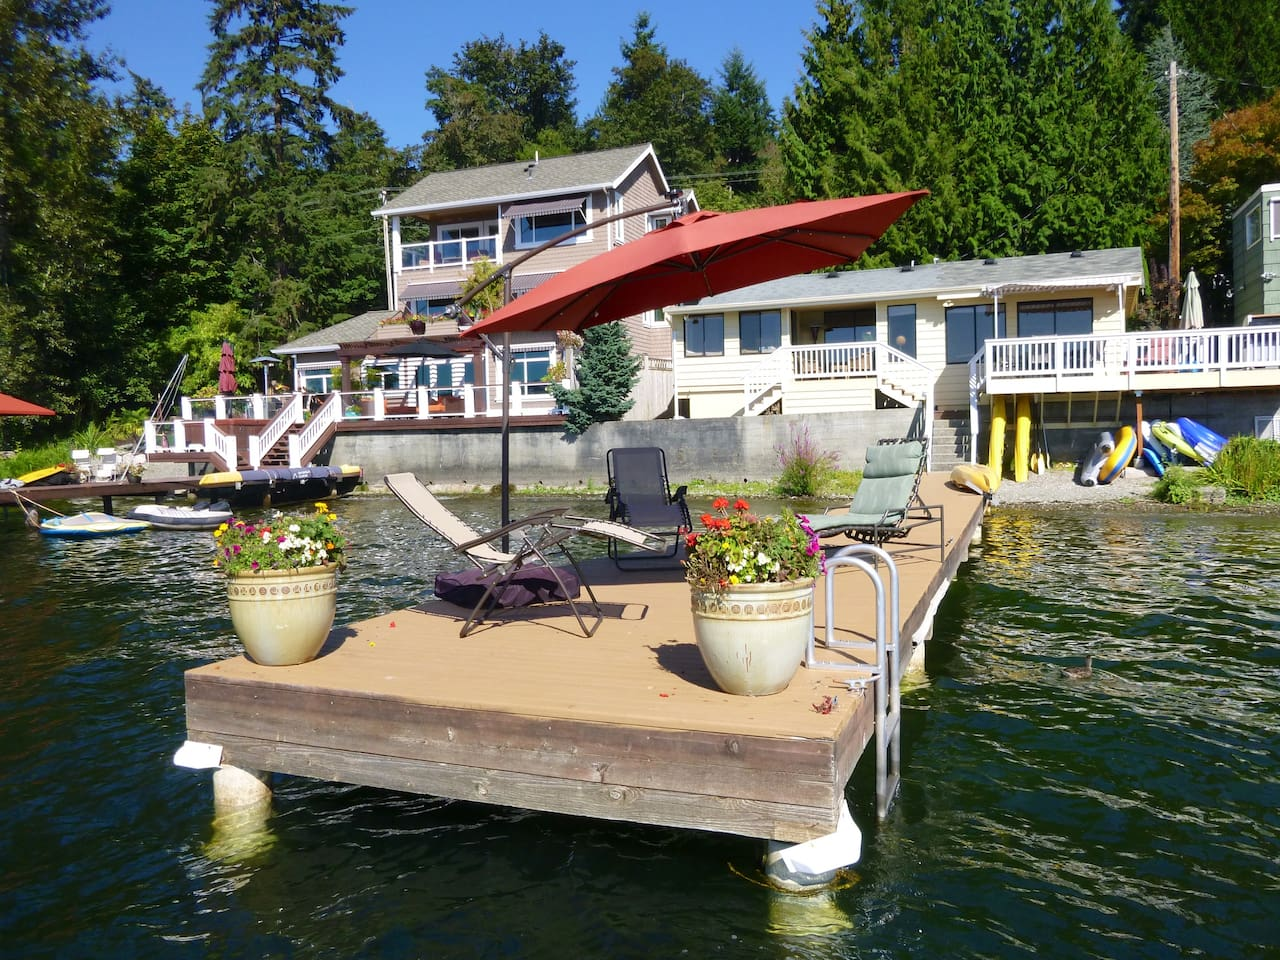 View of the House from the lake (on the right, the yellow one). You can use the kayaks, paddle board, raft or the floating stations to enjoy the lake or just relax by the big umbrella.